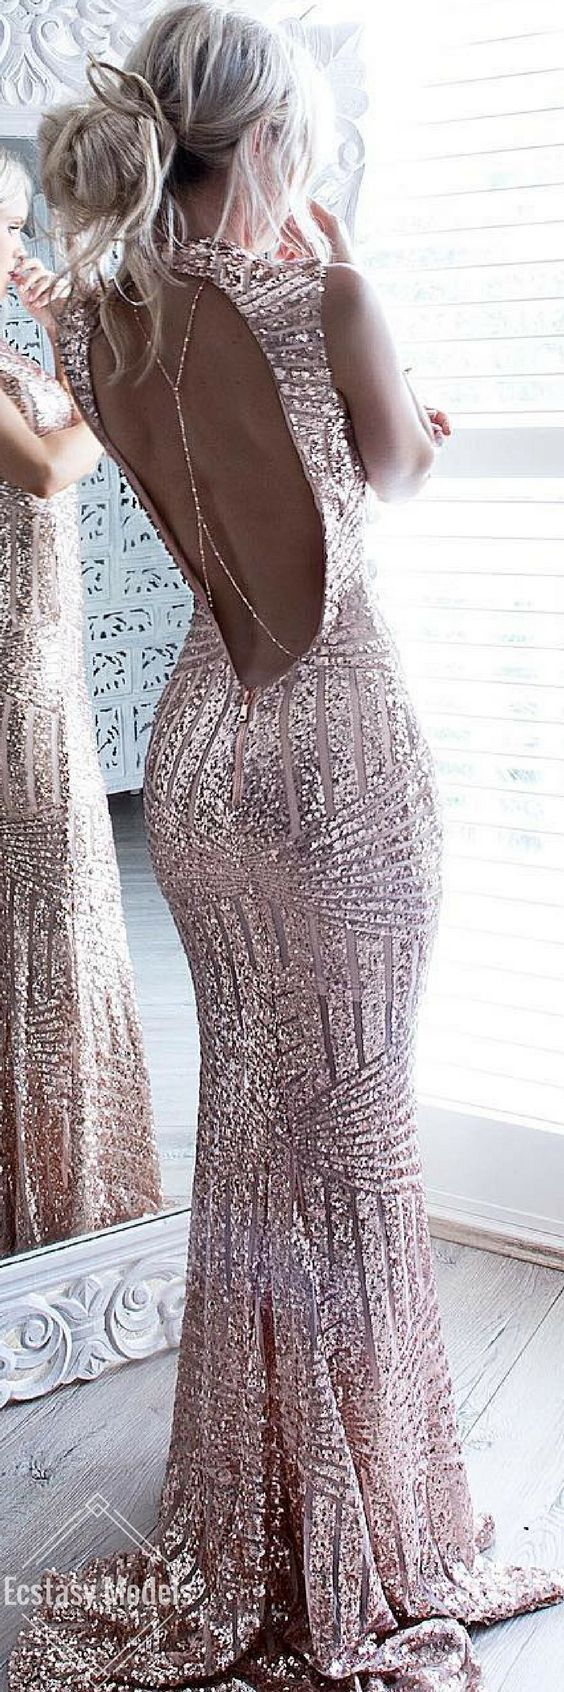 New arrival rose gold sequin prom gownprom dress with backless